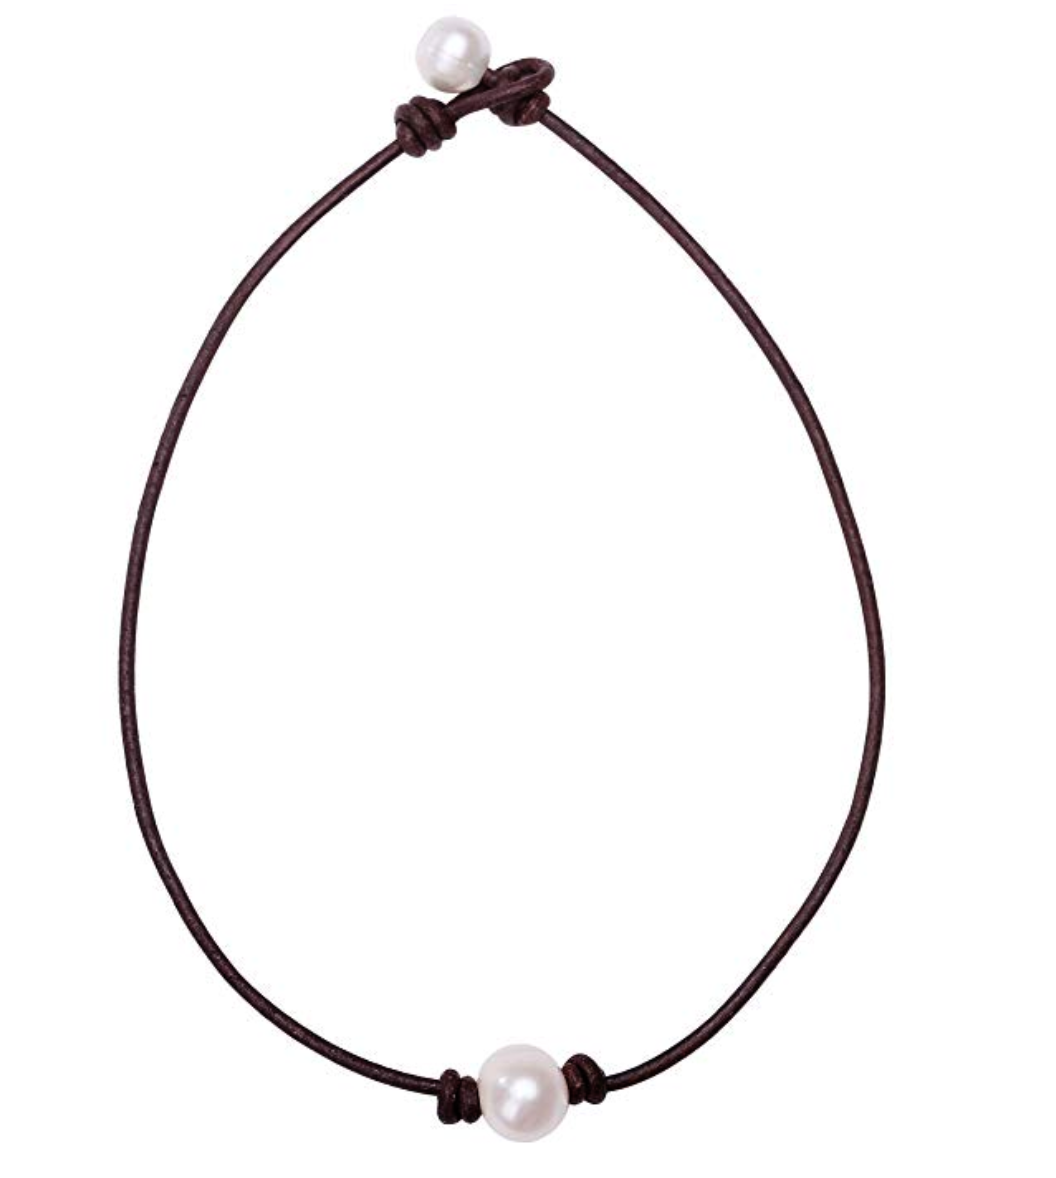 Handmade Pearl Choker with Genuine Leather for Women